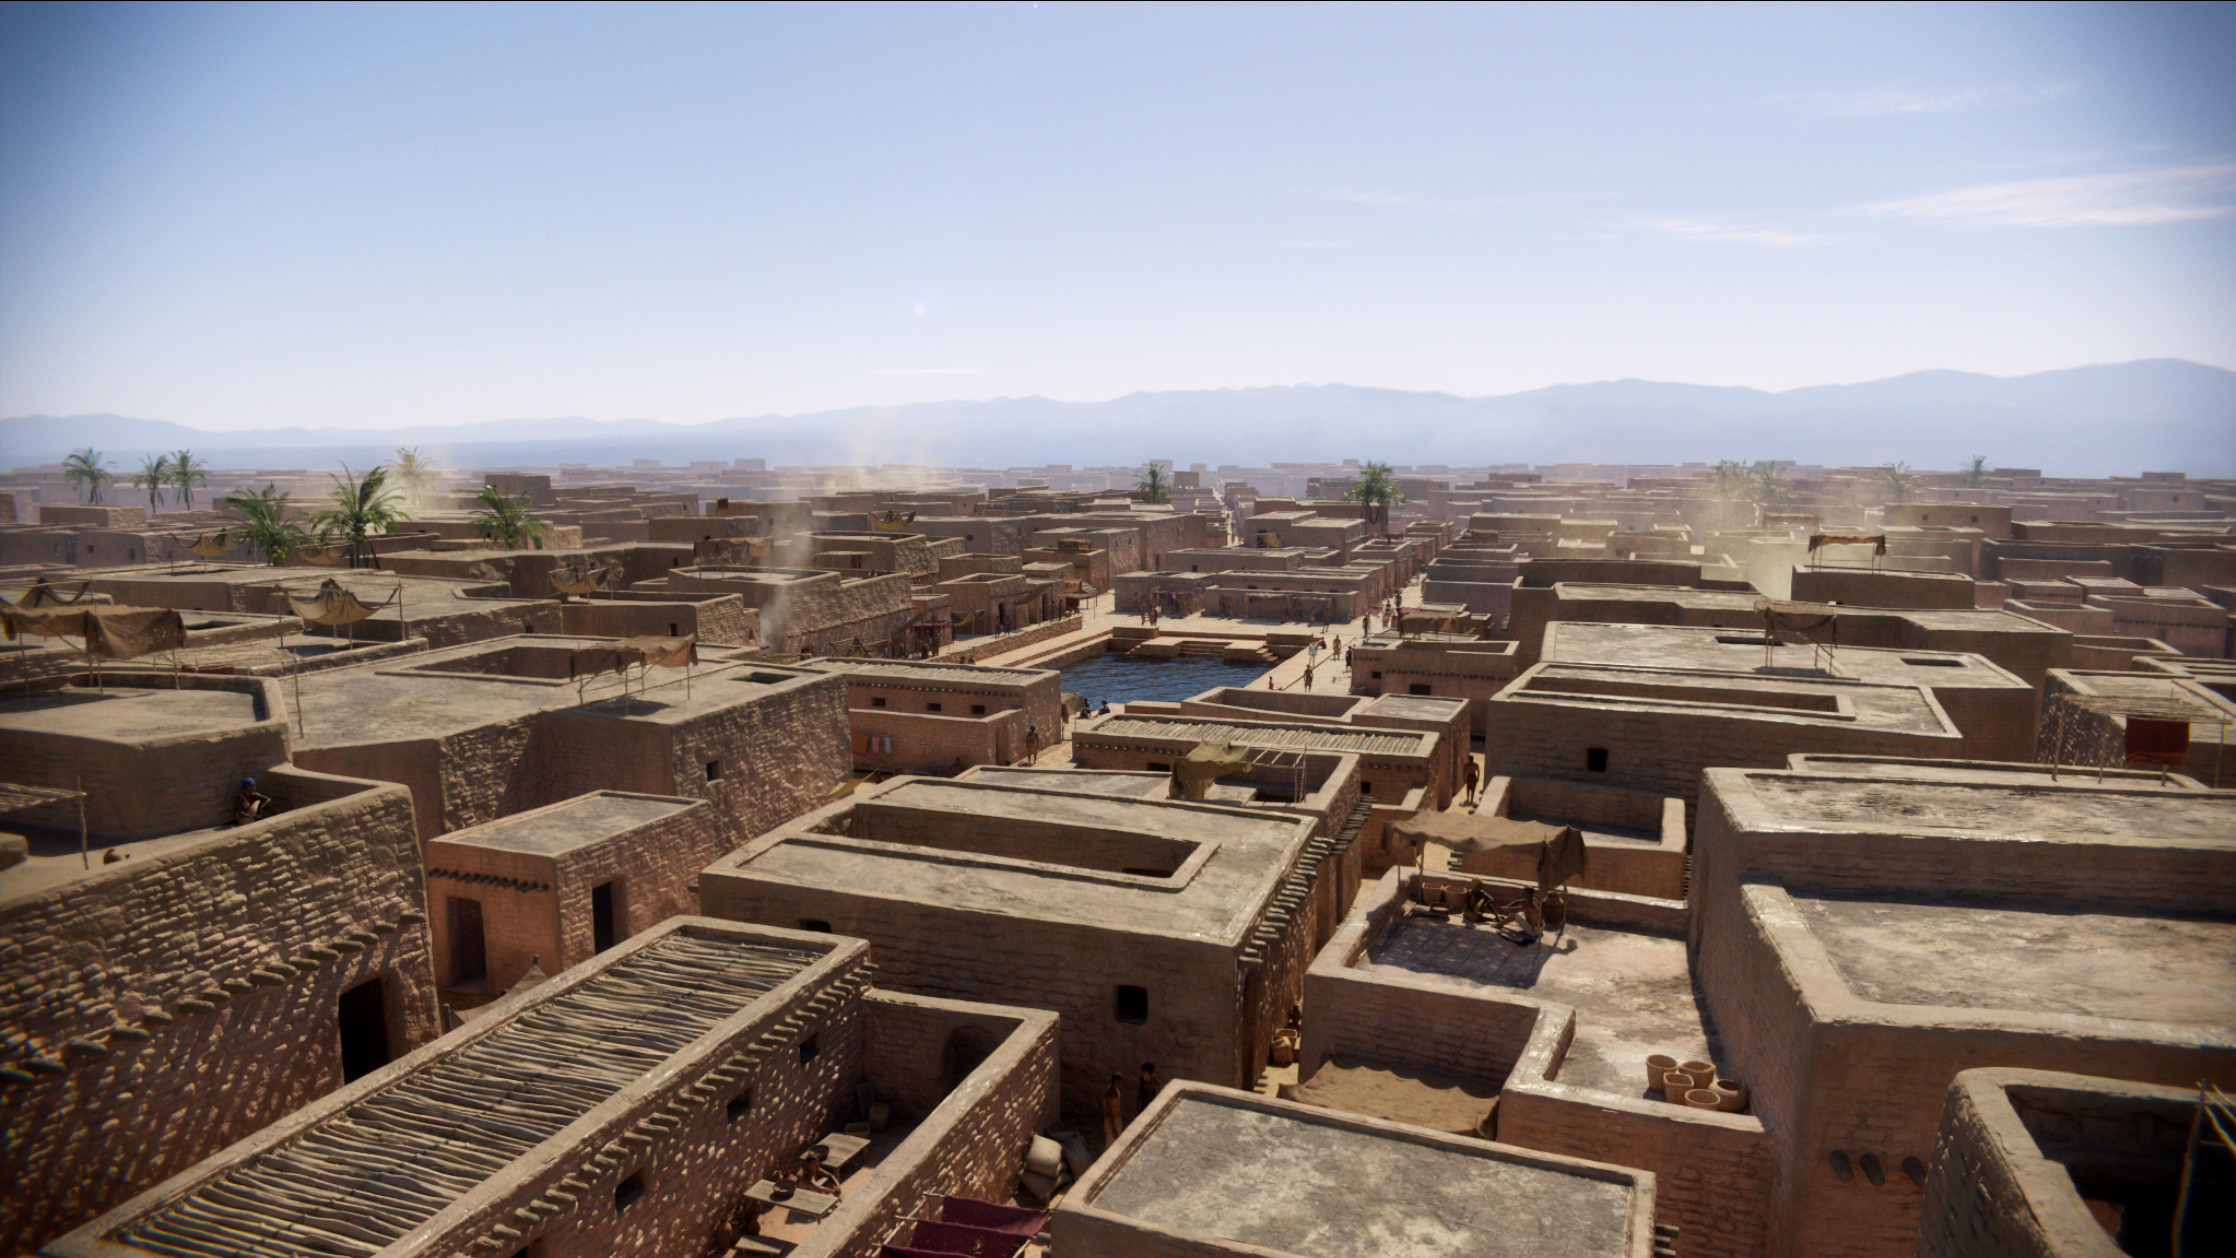 Mohenjo-daro final comp frame. I was responsible for layout and concept of the city